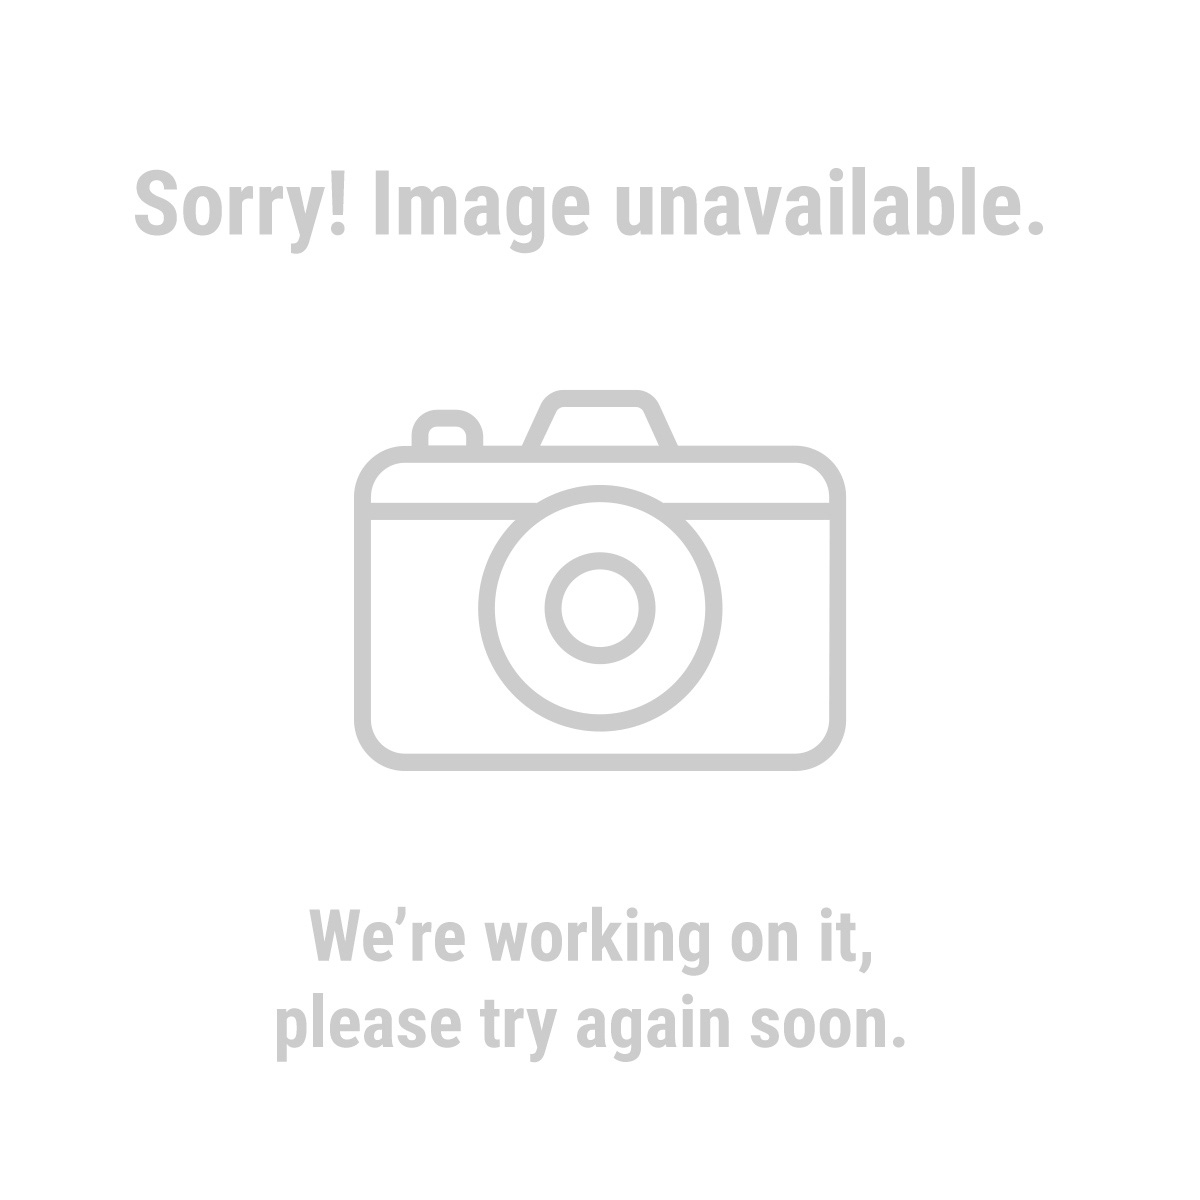 96386 Leather Cell Phone Holder